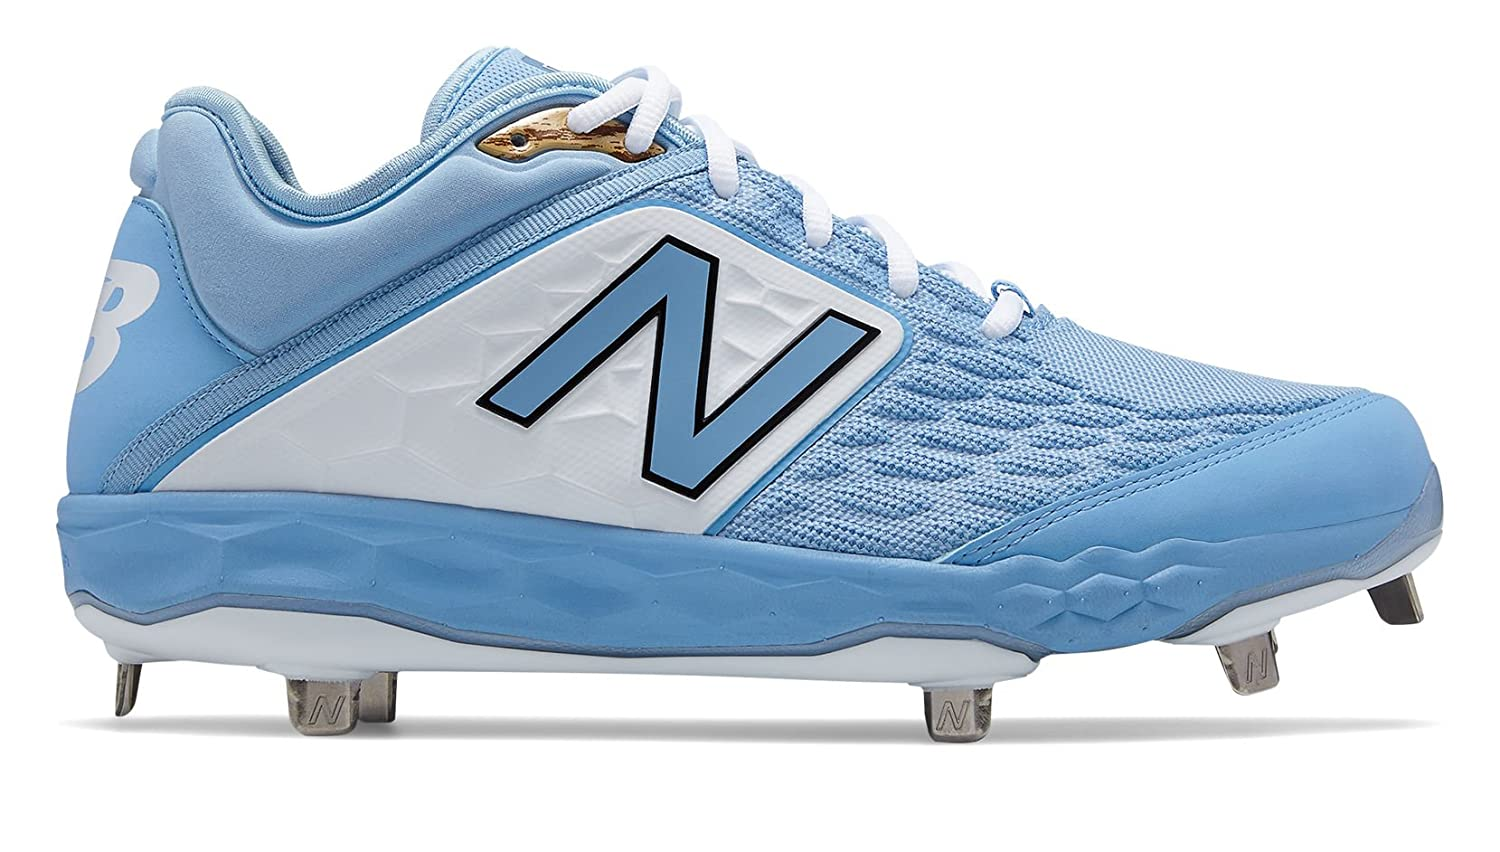 New Balance Men's 3000v4 Metal Baseball Shoe B075R7QH6H 12.5 2E US|Light Blue